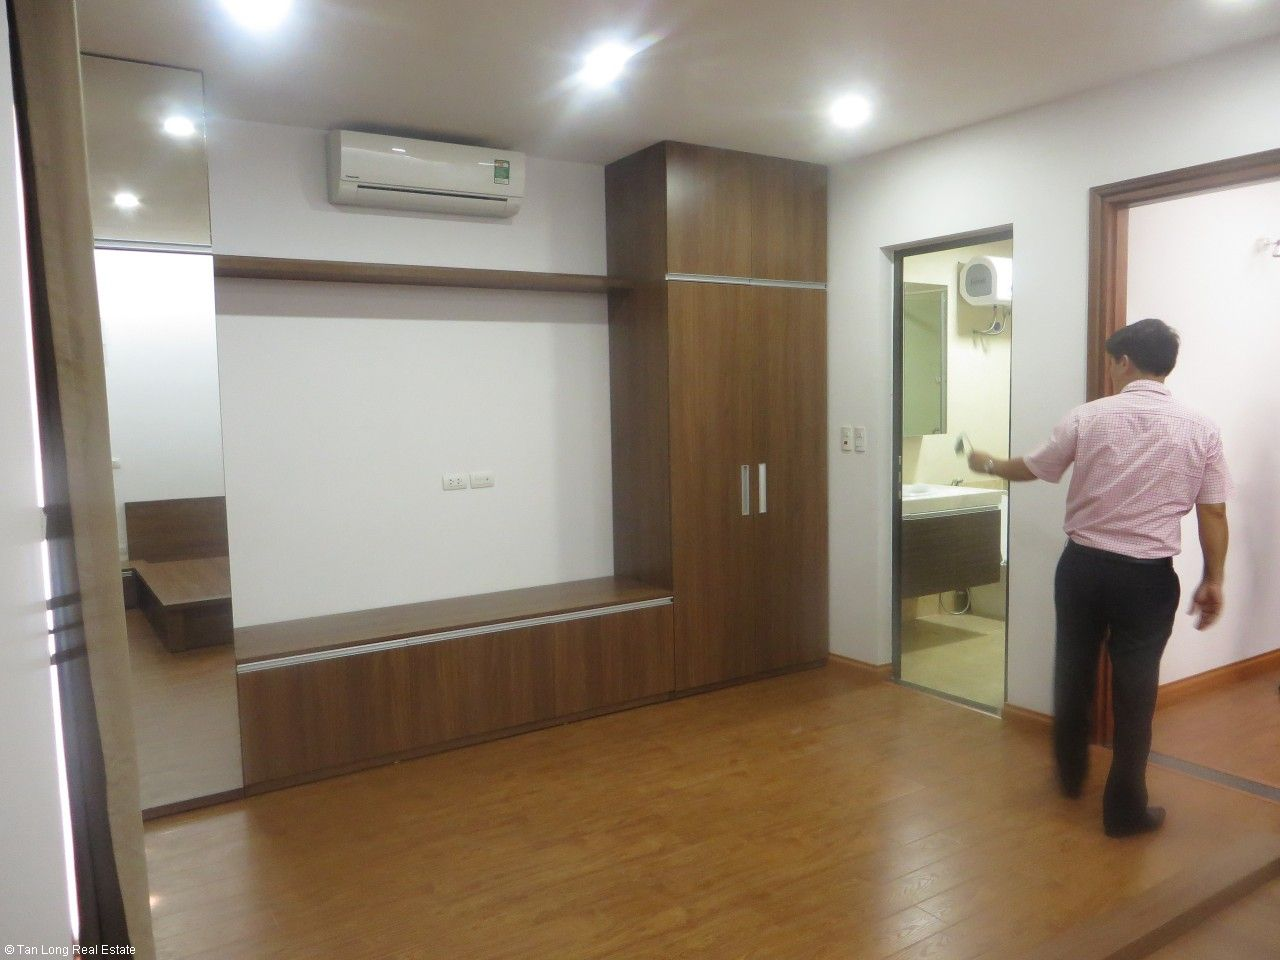 House in Gamuda, Hoang Mai district, Ha Noi for rent. 6